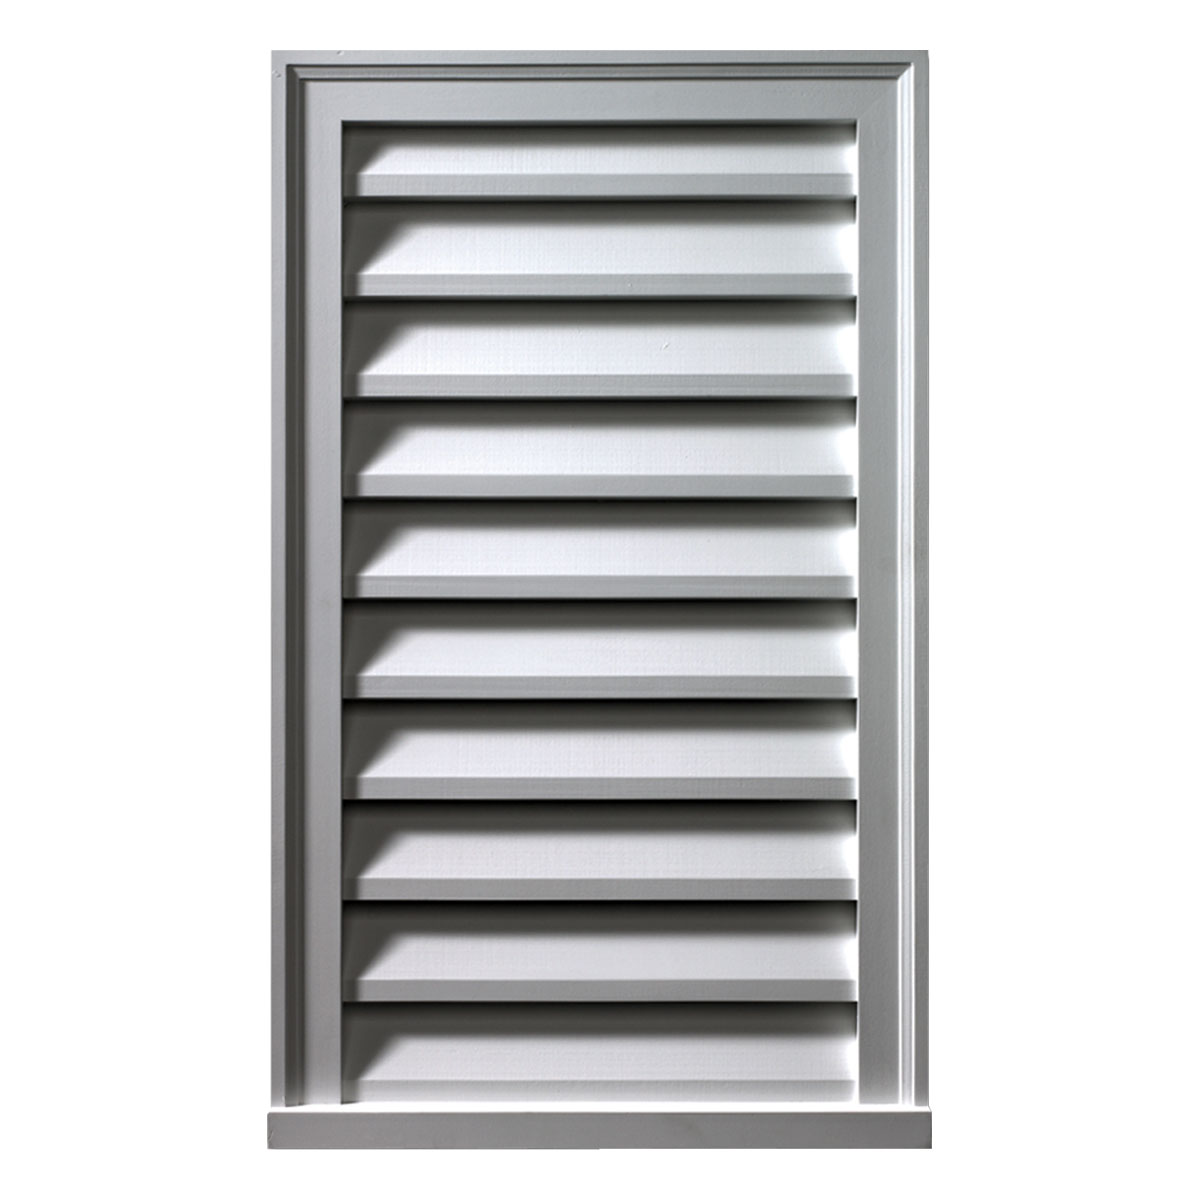 1200 #5E5E6D Fypon Gable Vents Newhairstylesformen2014.com pic Louvered Exterior Doors Metal 39111200